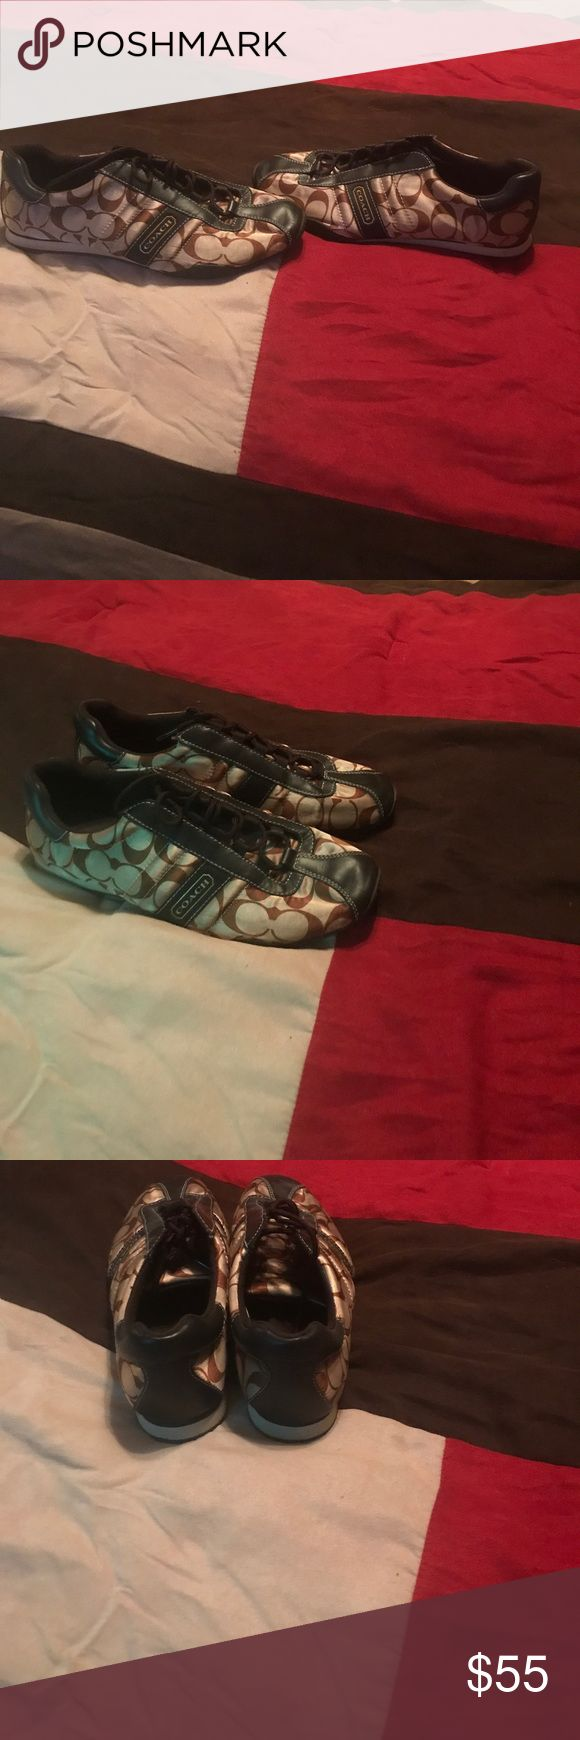 Coach shoes Real good condition worn only one time. Coach Shoes Flats & Loafers